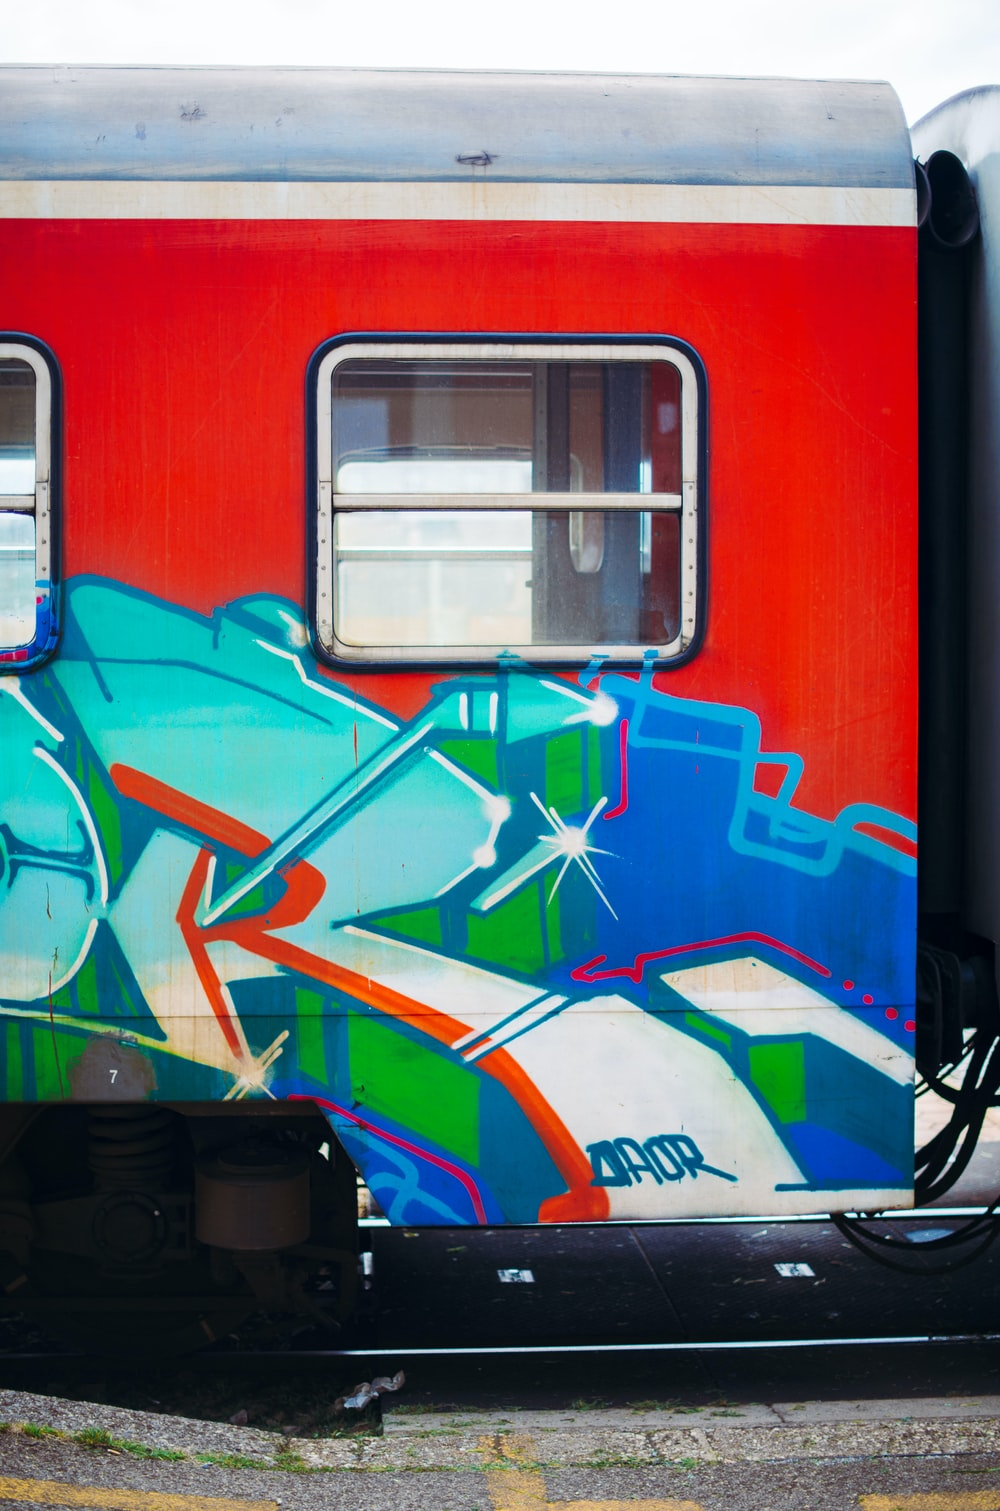 red blue and white train